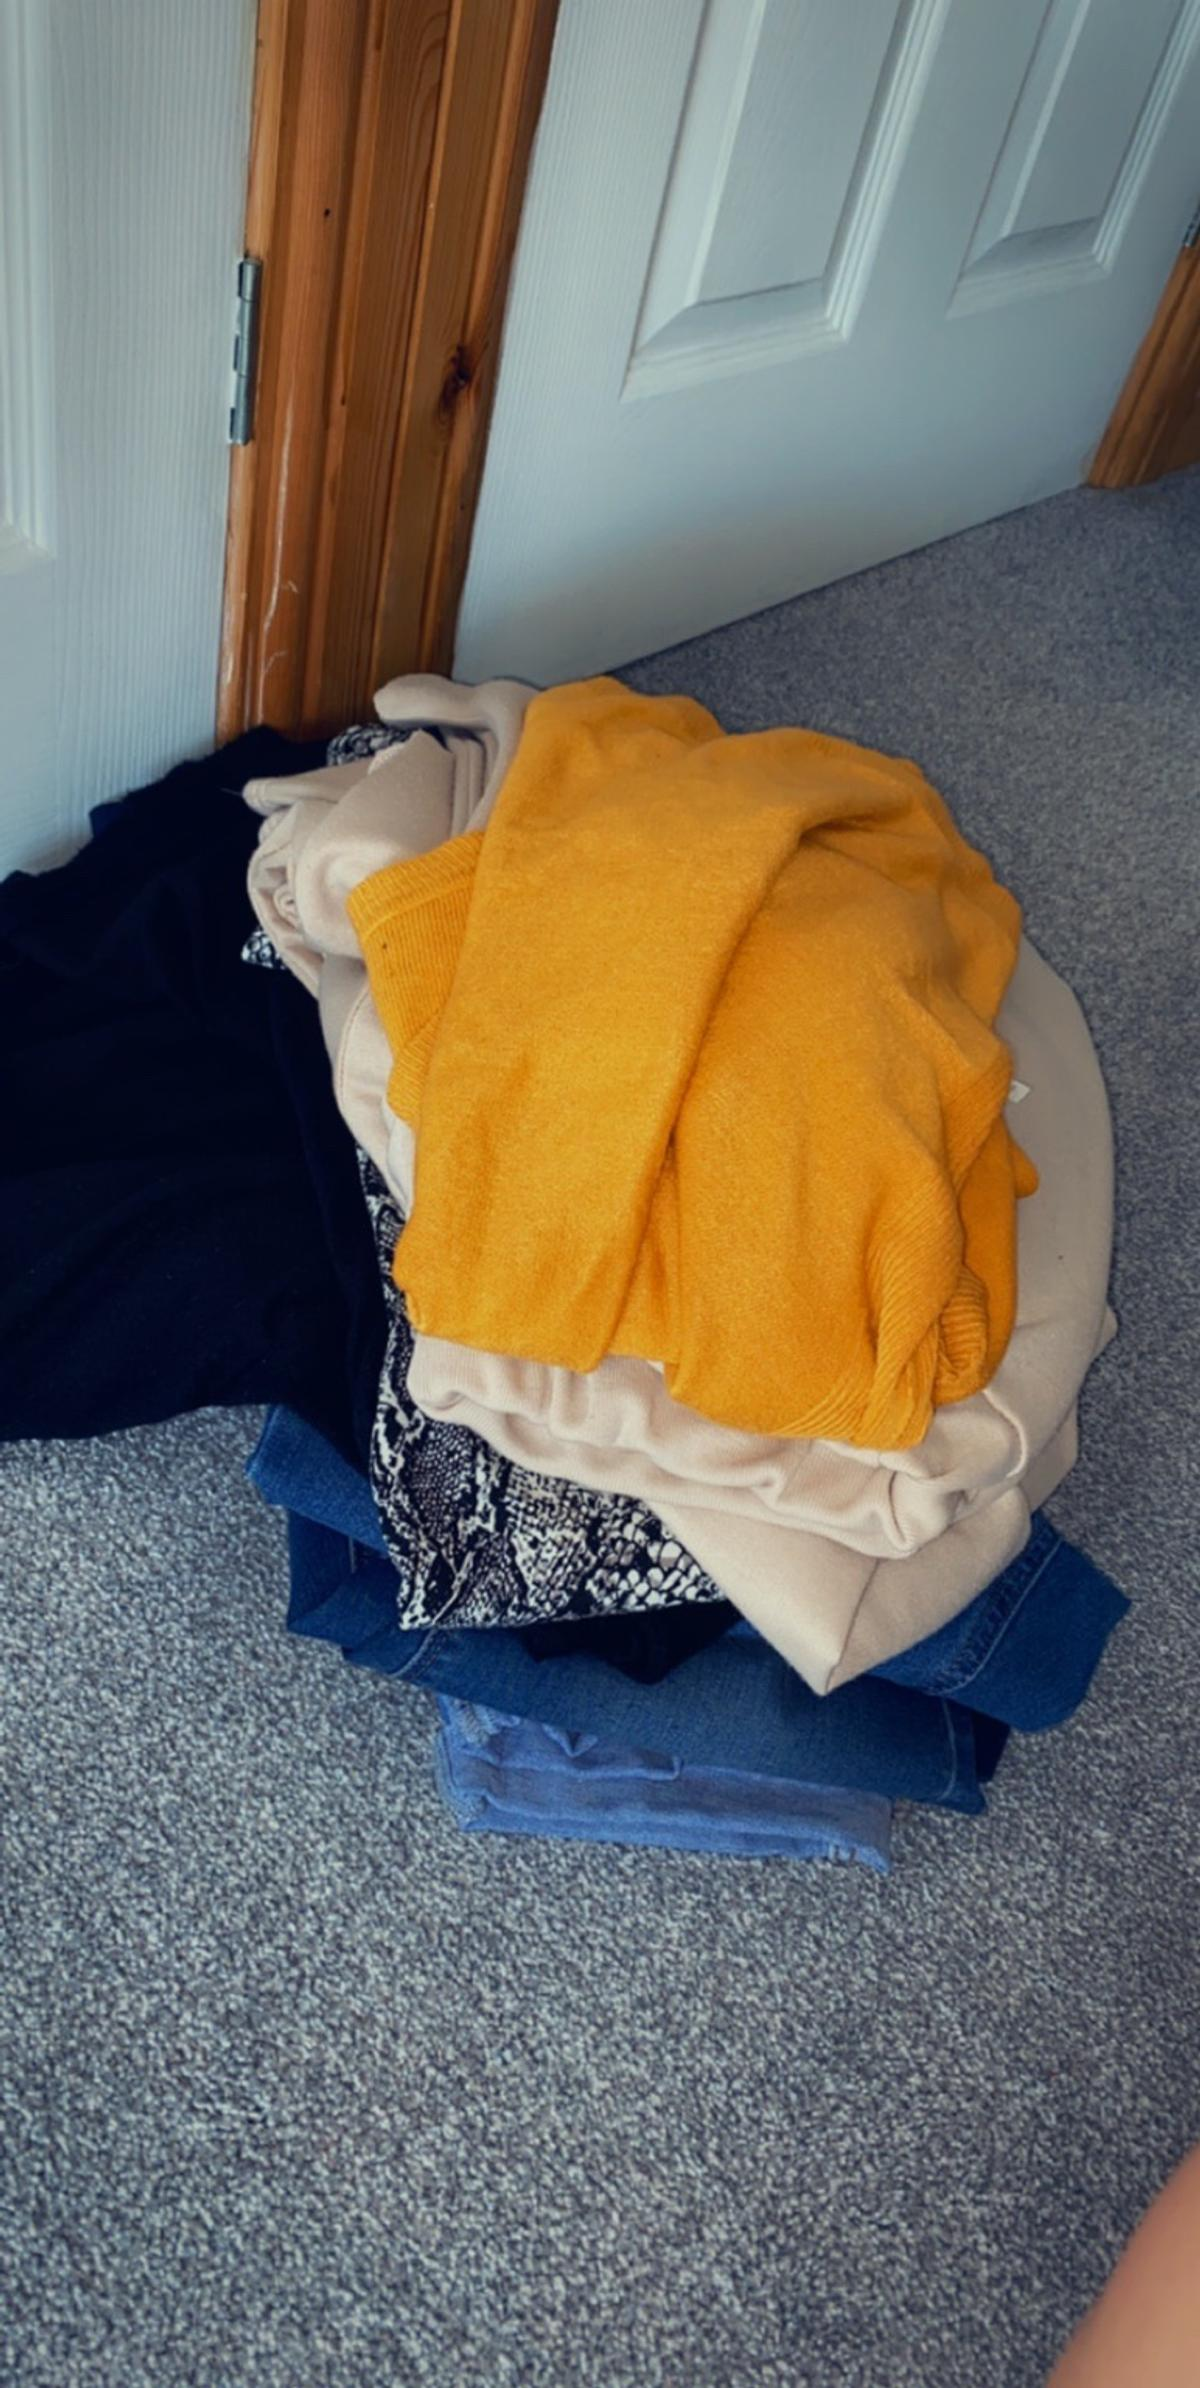 Size 18 jumper dress Size 18 long sleeve dress Size 18 2x over bump jeans Size 14 under bump jeans Size 18 lounge wear Size large mustard jumper  From primark new look and boohoo